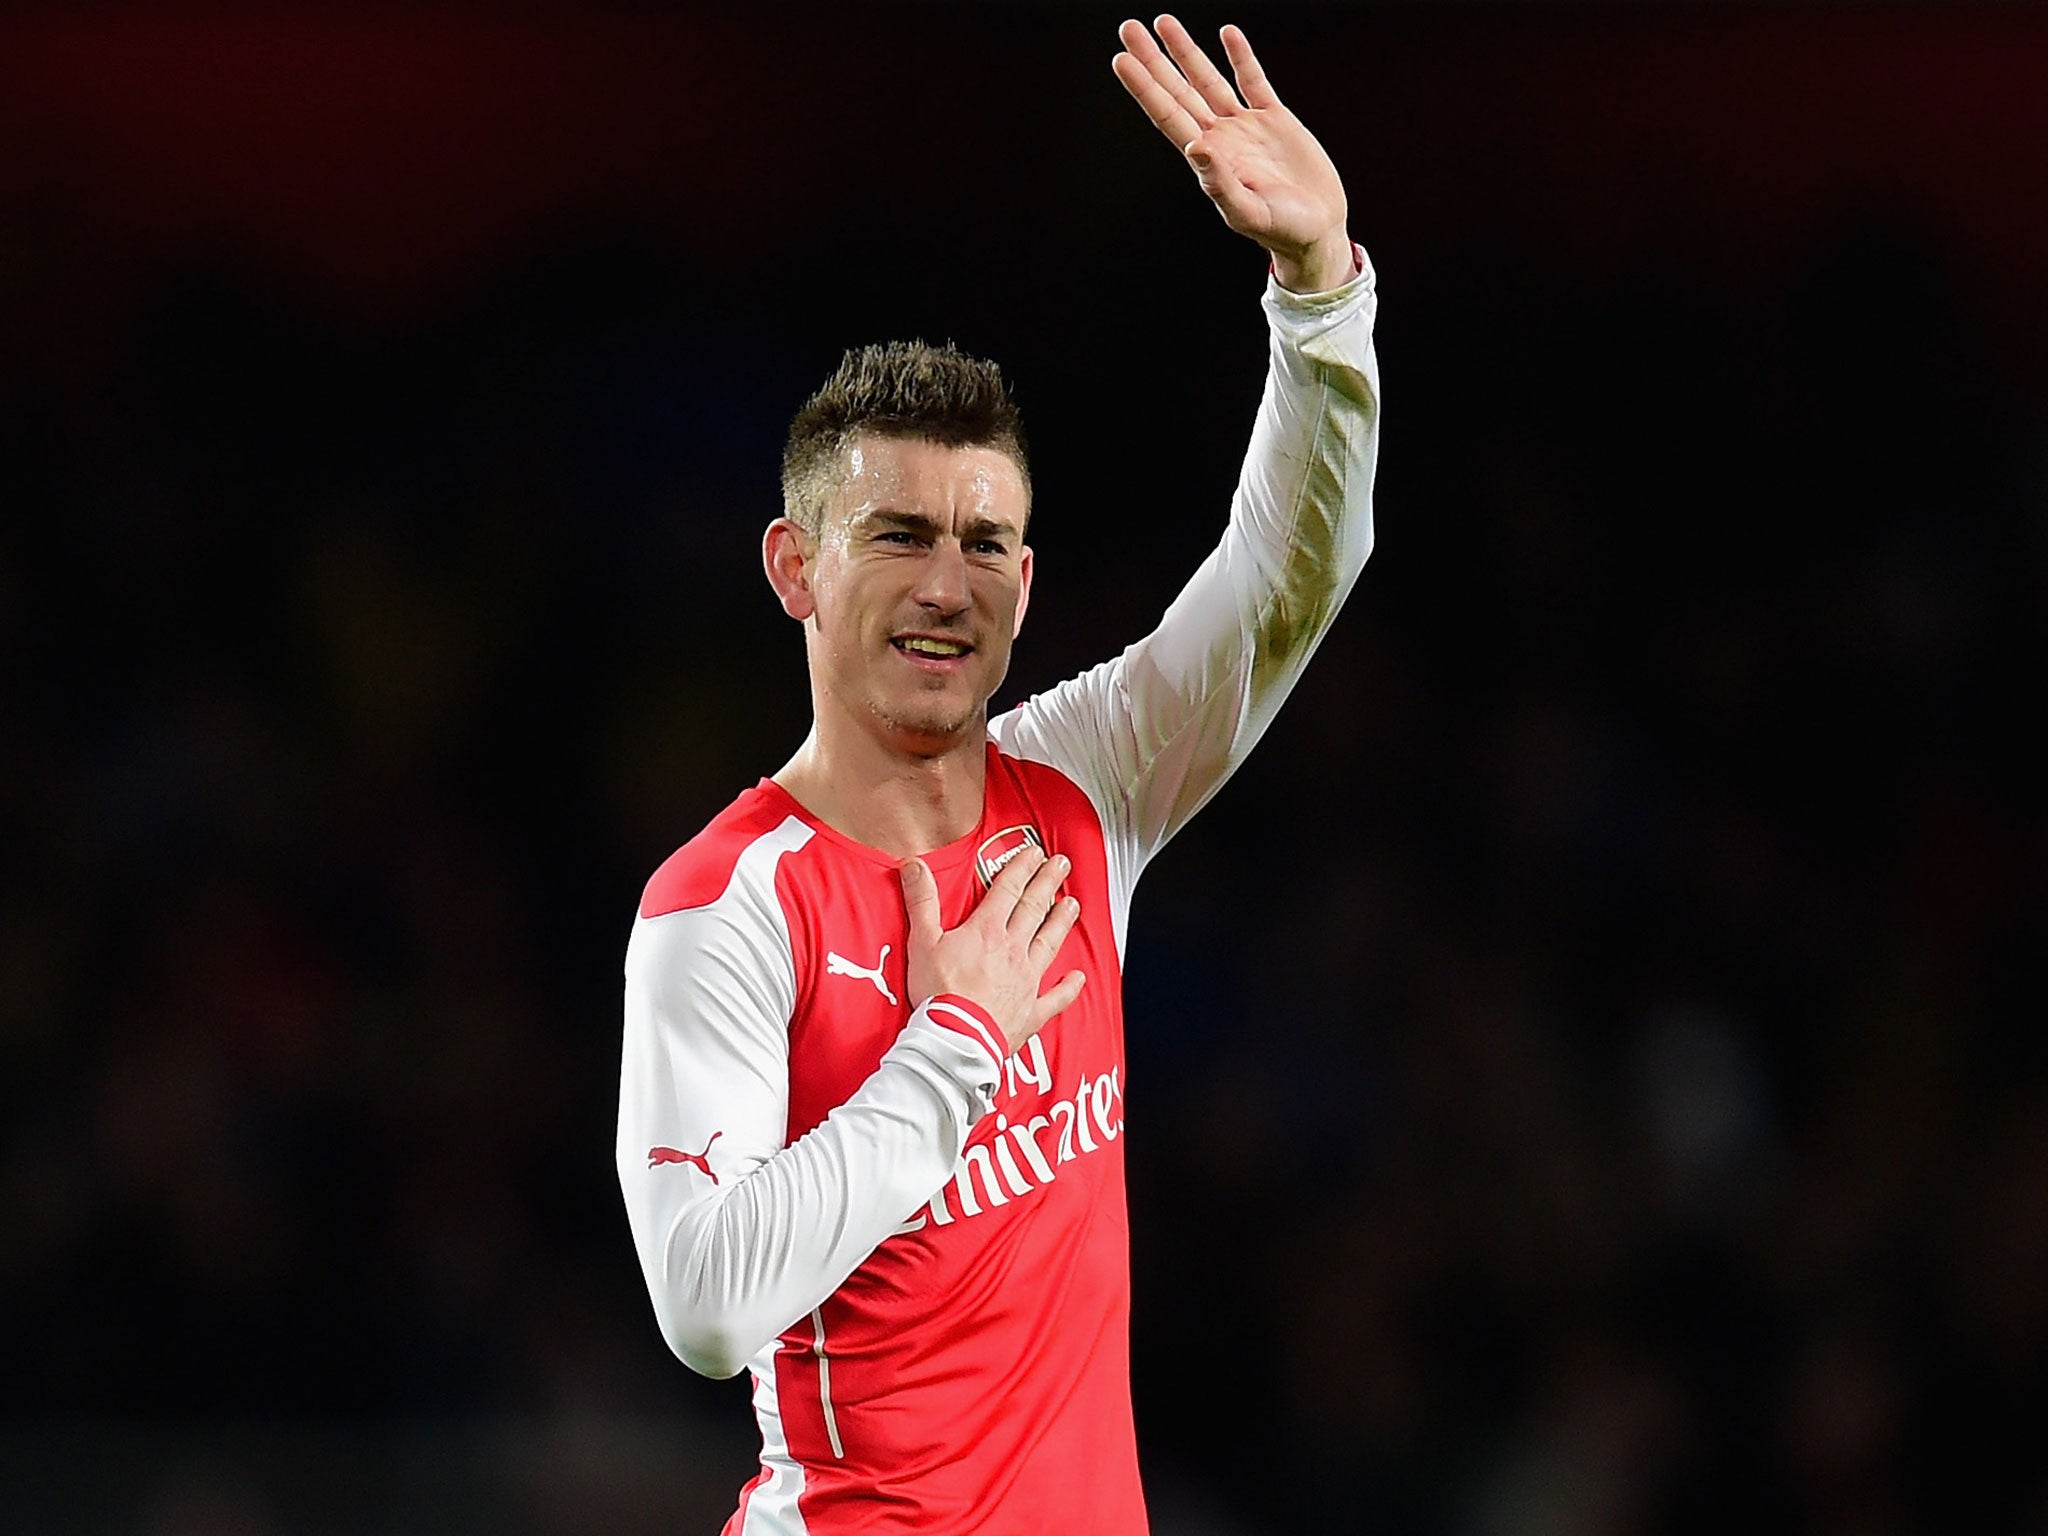 Arsenal defender Laurent Koscielny linked with £21m transfer to